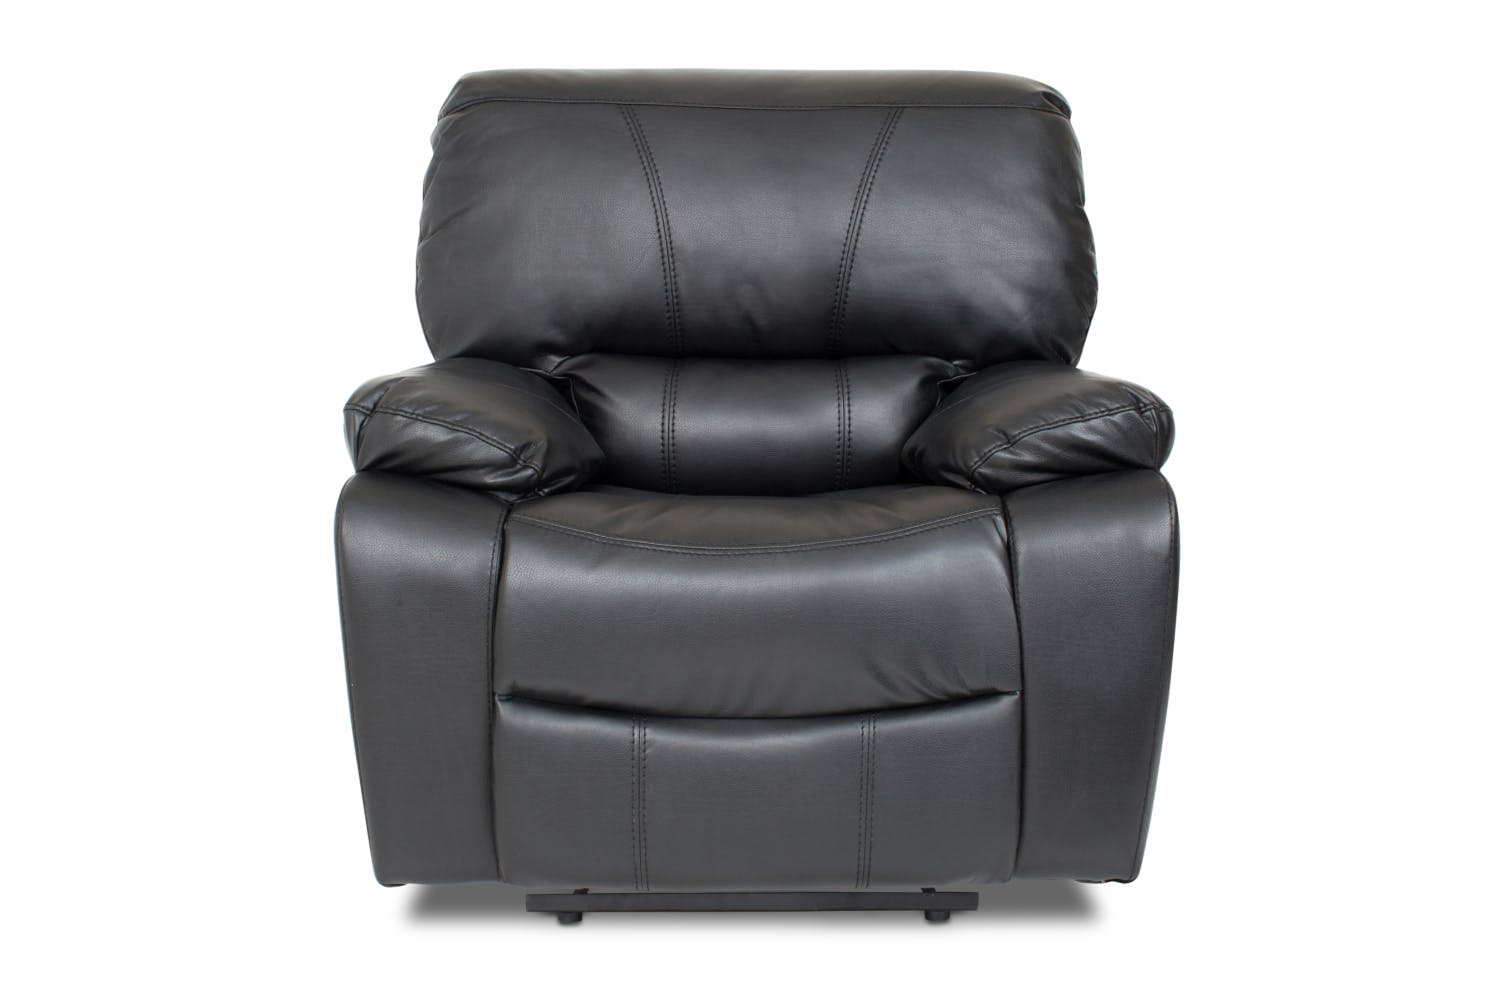 swivel chair harvey norman reclining office with leg rest recliner chairs ireland save 200